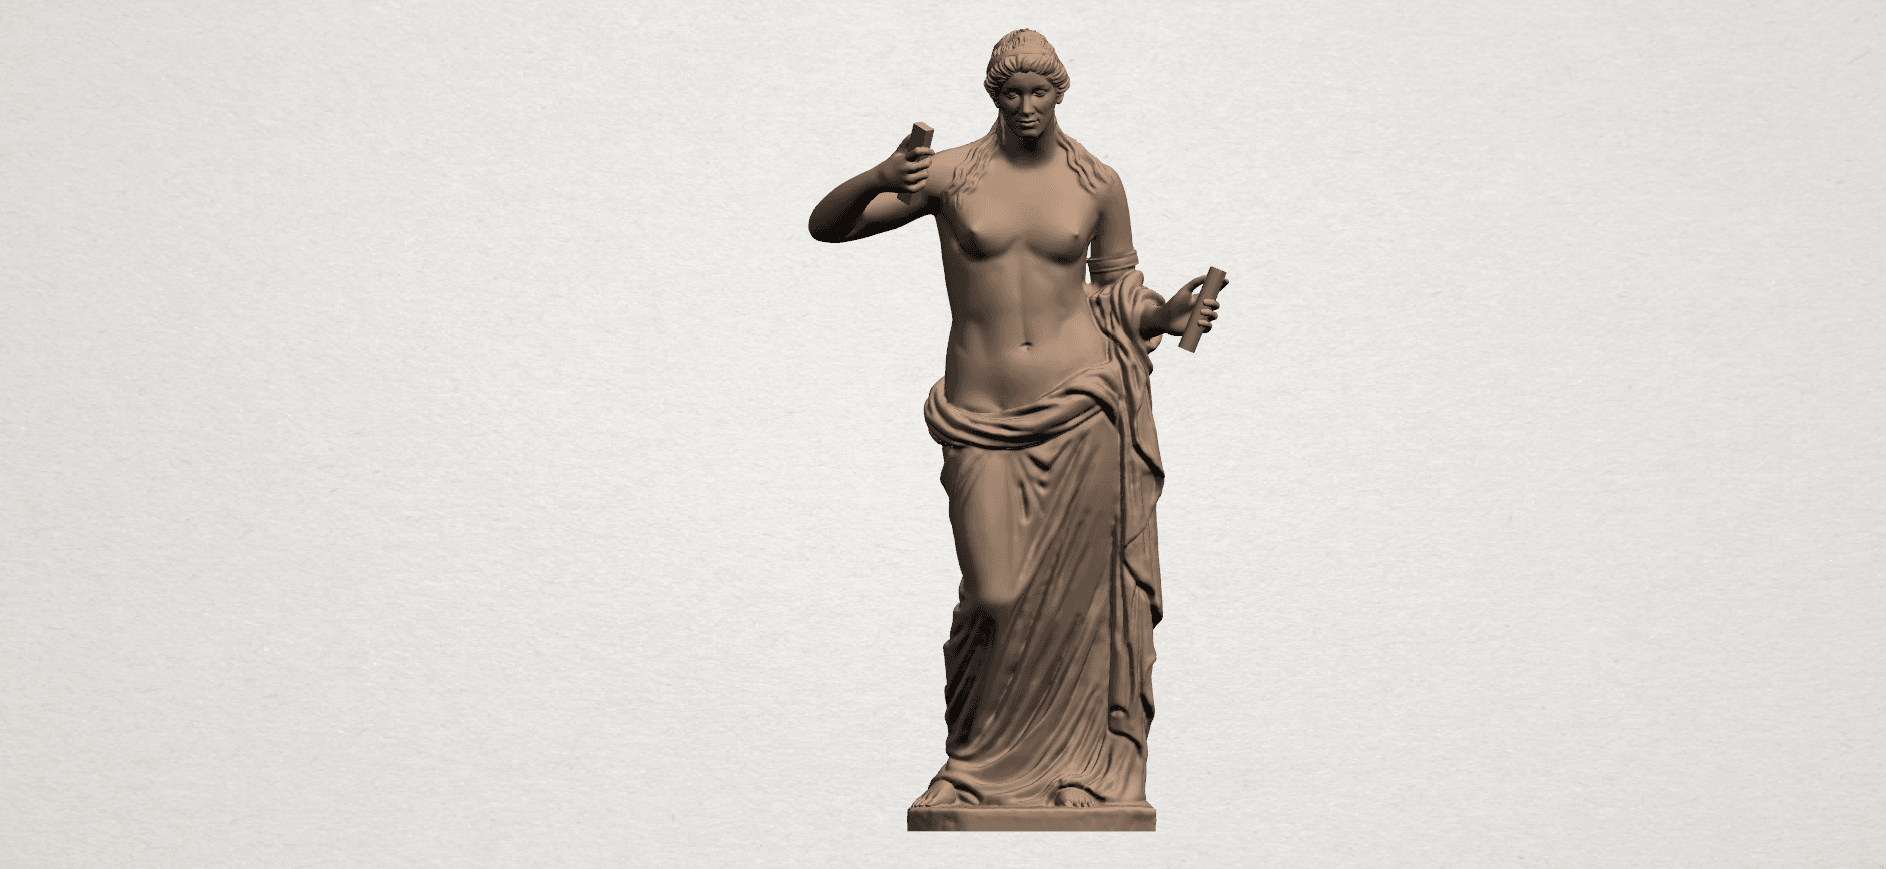 Naked Girl (xi) A01.png Download free STL file Naked Girl 11 • 3D printable model, GeorgesNikkei